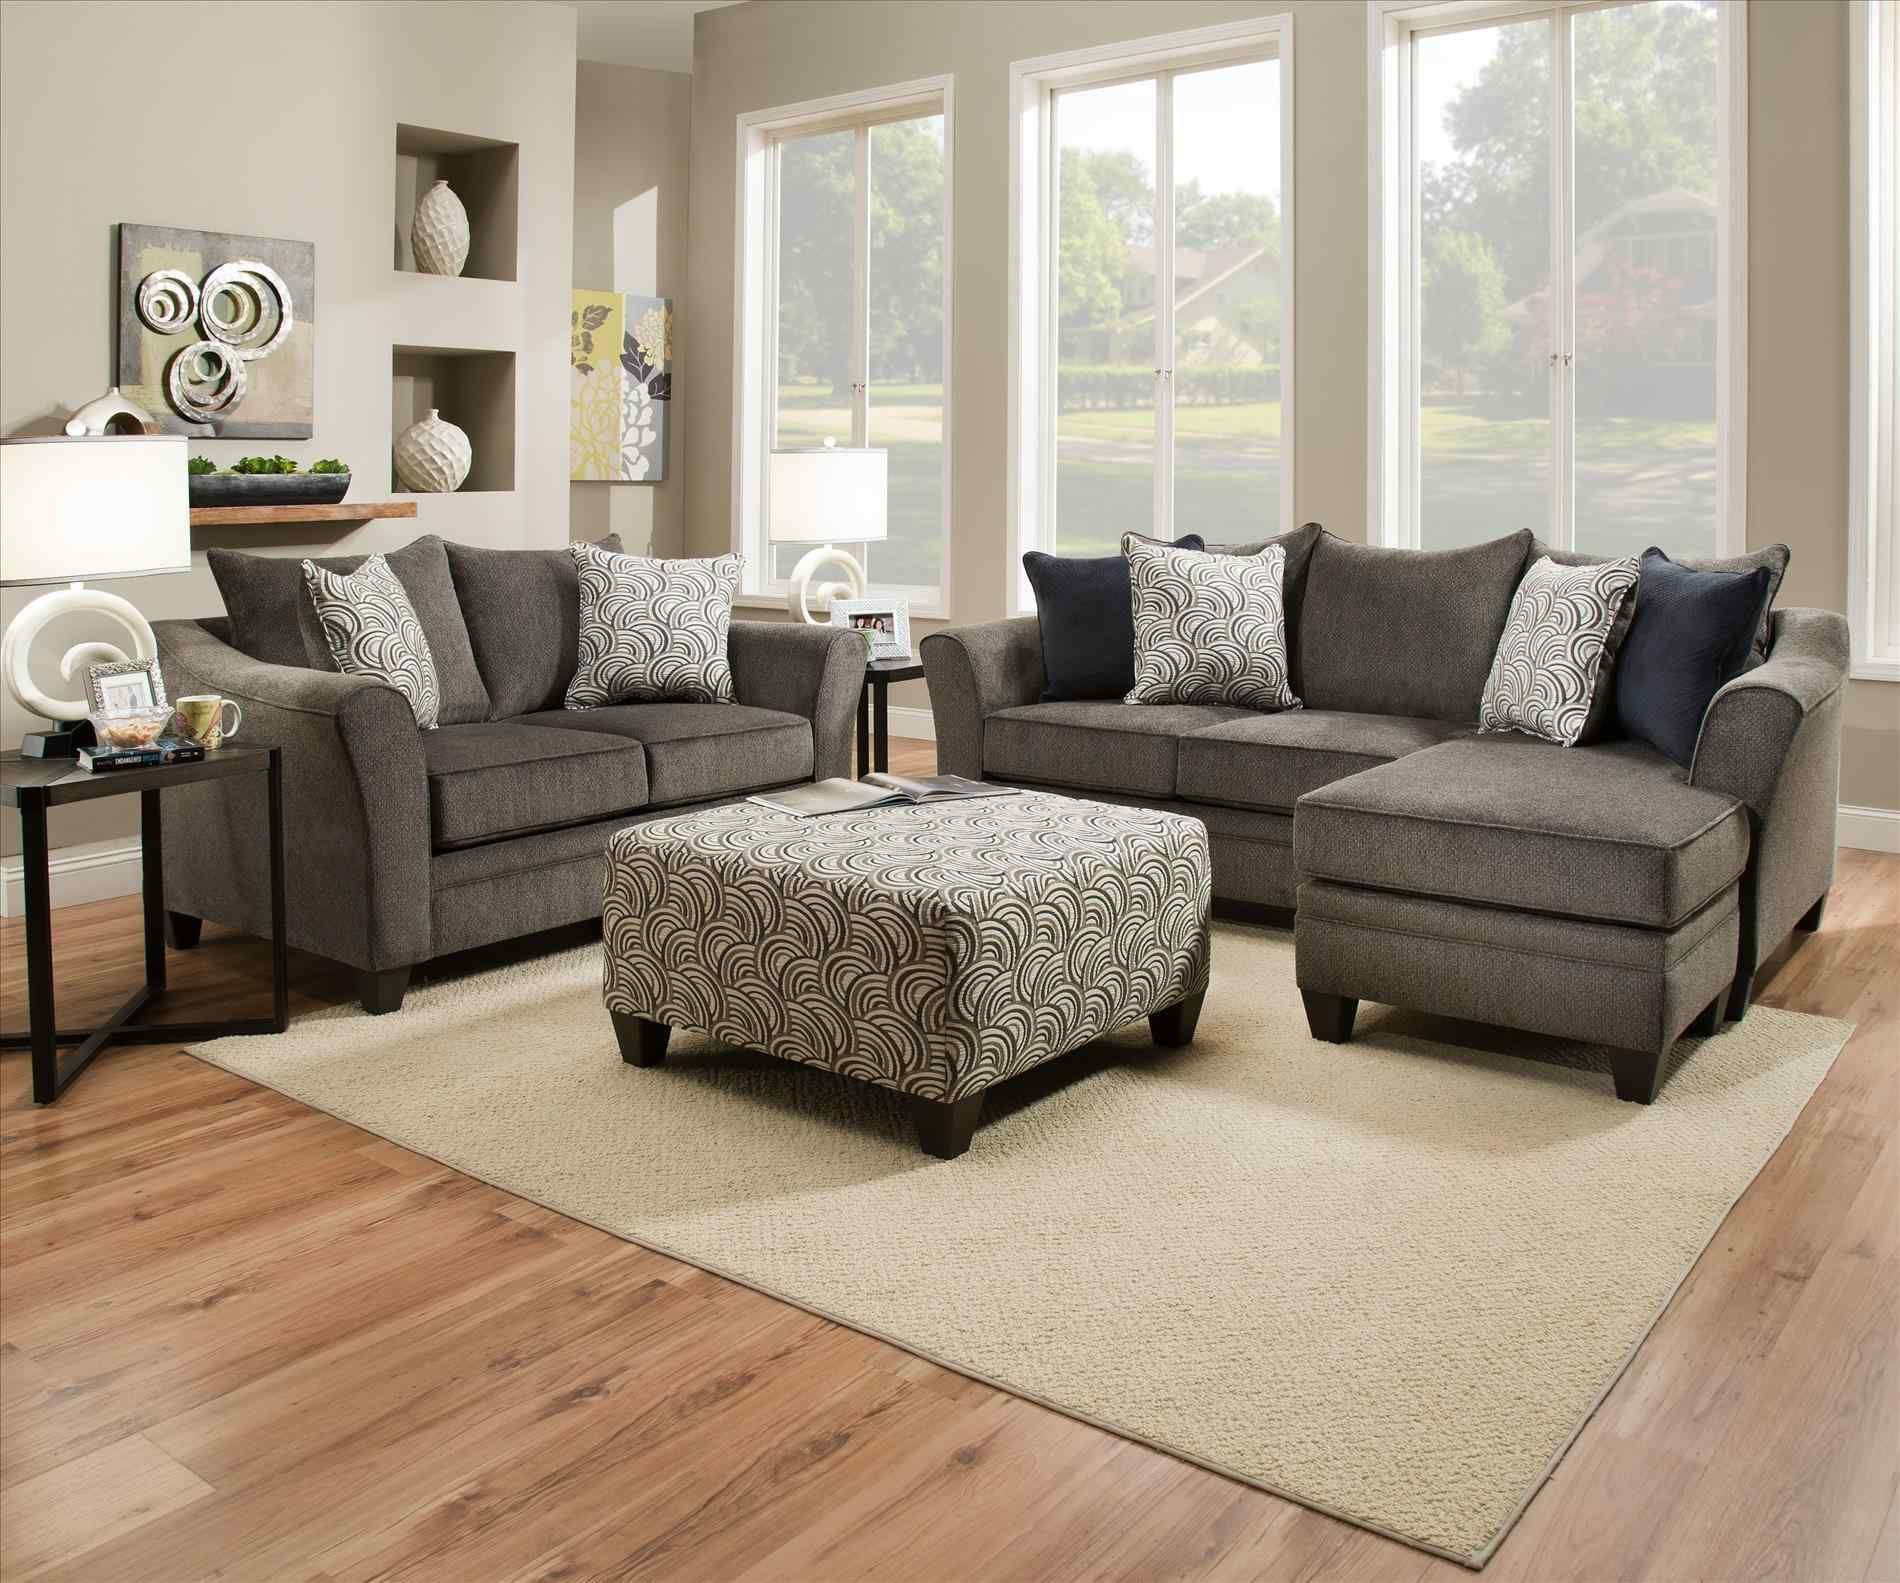 sectional sofa badger lexington overstock warehouse smoke albany